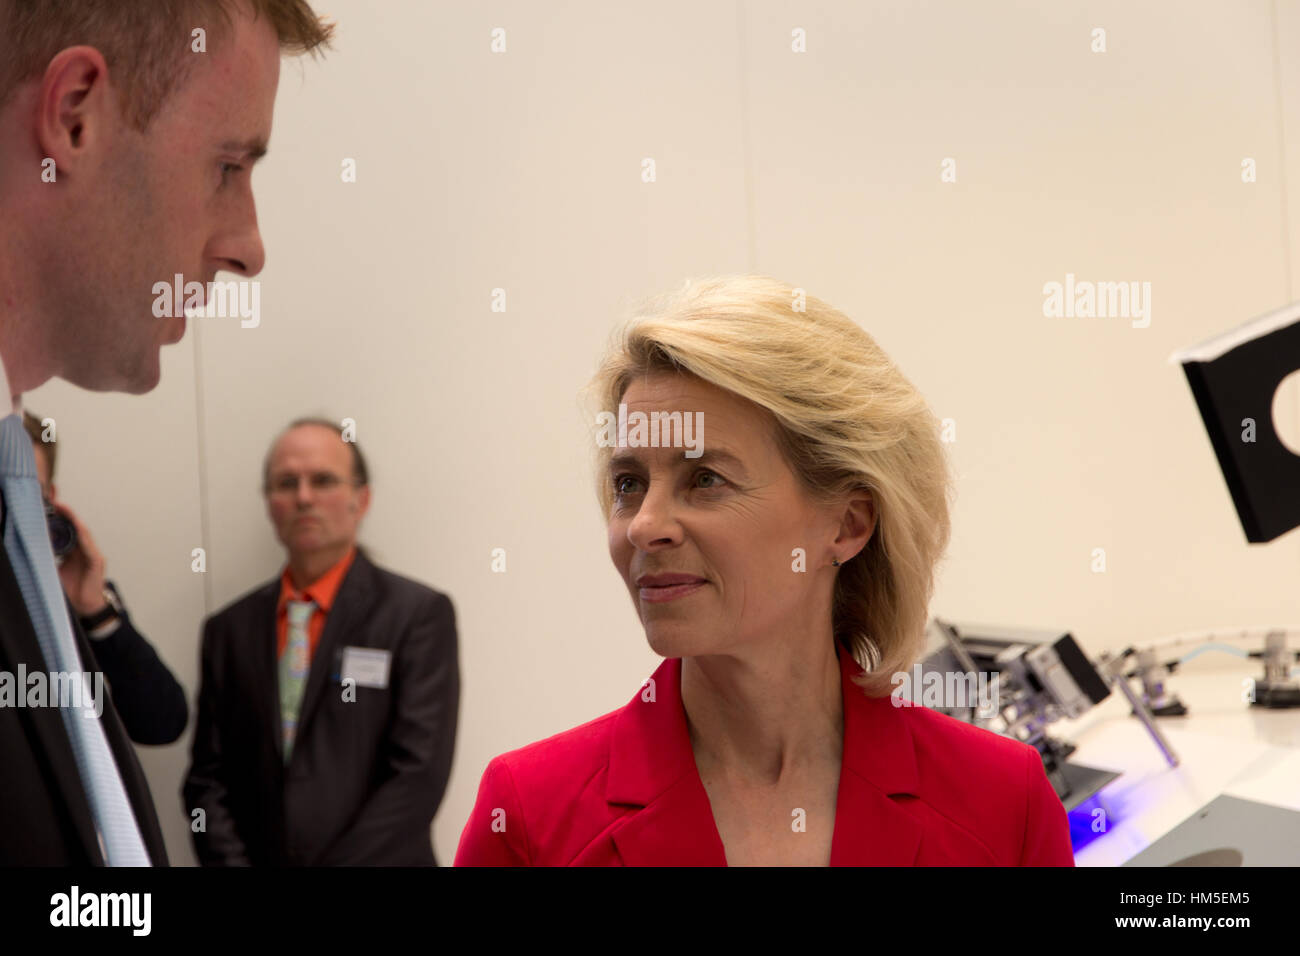 BERLIN, GERMANY - MAY 21: Federal Minister of Defence of Germany, Ursula von der Leyen at the International Aerospace - Stock Image